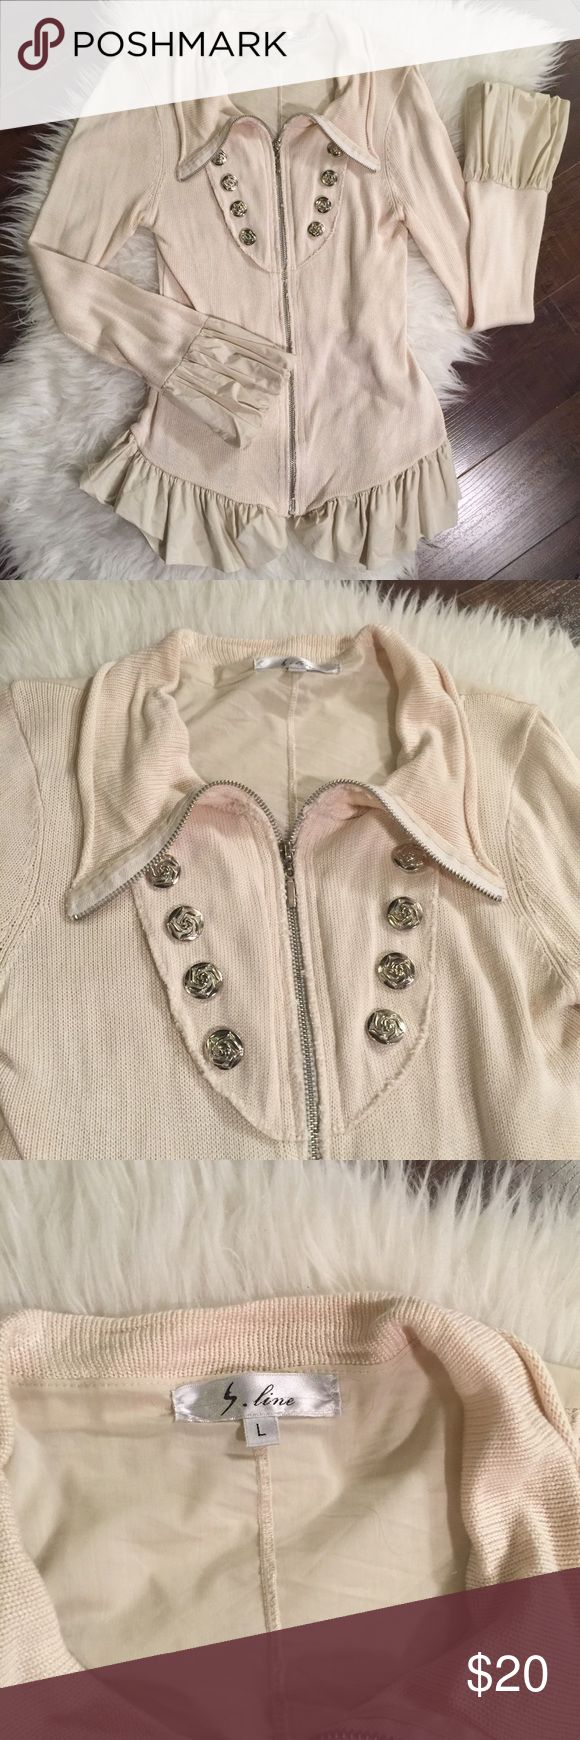 Cream ruffle jacket. Women's cream ruffle zip up Excellent used condition womens cream jacket with ruffle details. Purchased from the Buckle. Worn maybe 3 times. Very unique. No low ball offers or trades. Please ask any questions and review photos for details and wear. Size large but fits more like a Medium which is why it's listed that way. Price is firm. Not taking offers. Buckle Sweaters Cardigans